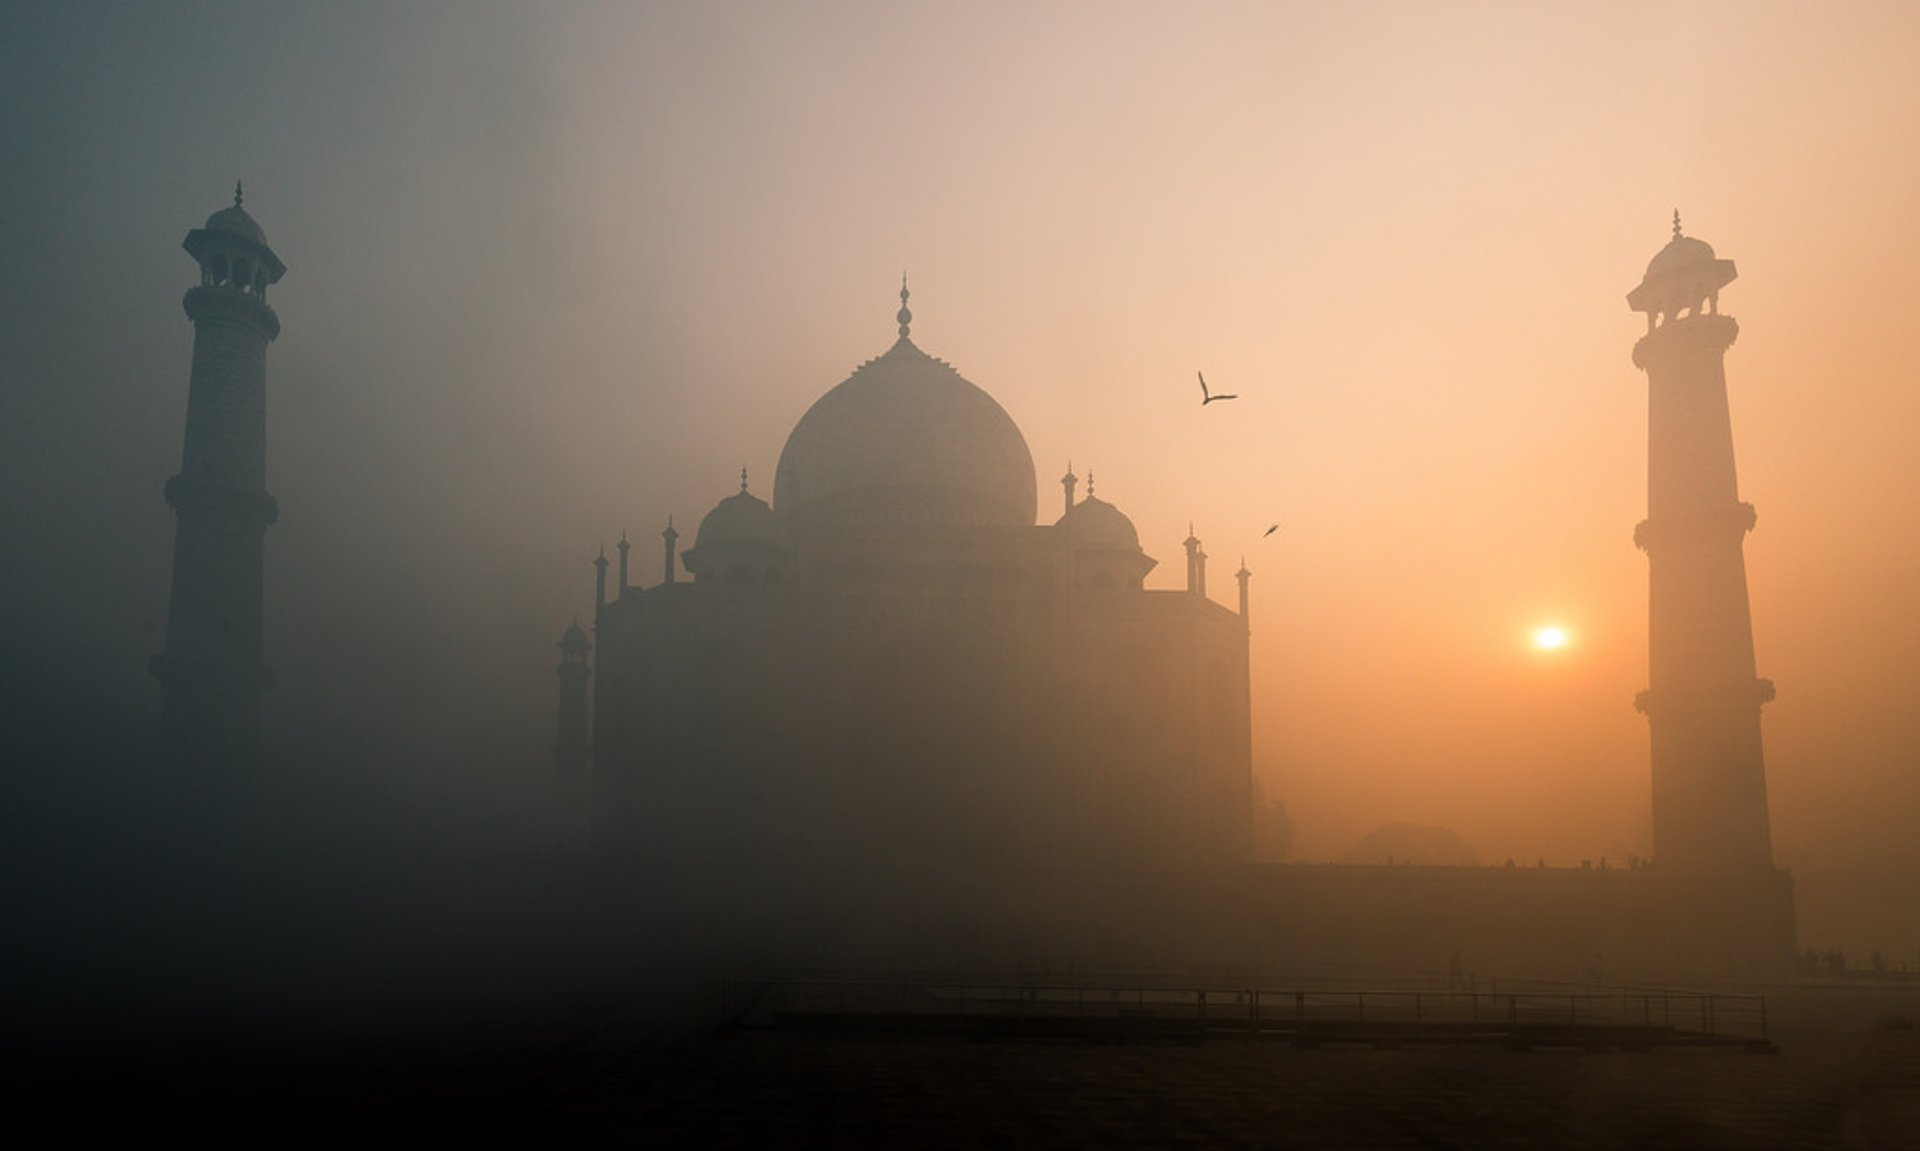 Sunrise and Sunset near Taj Mahal in Taj Mahal and Agra  - Best Season